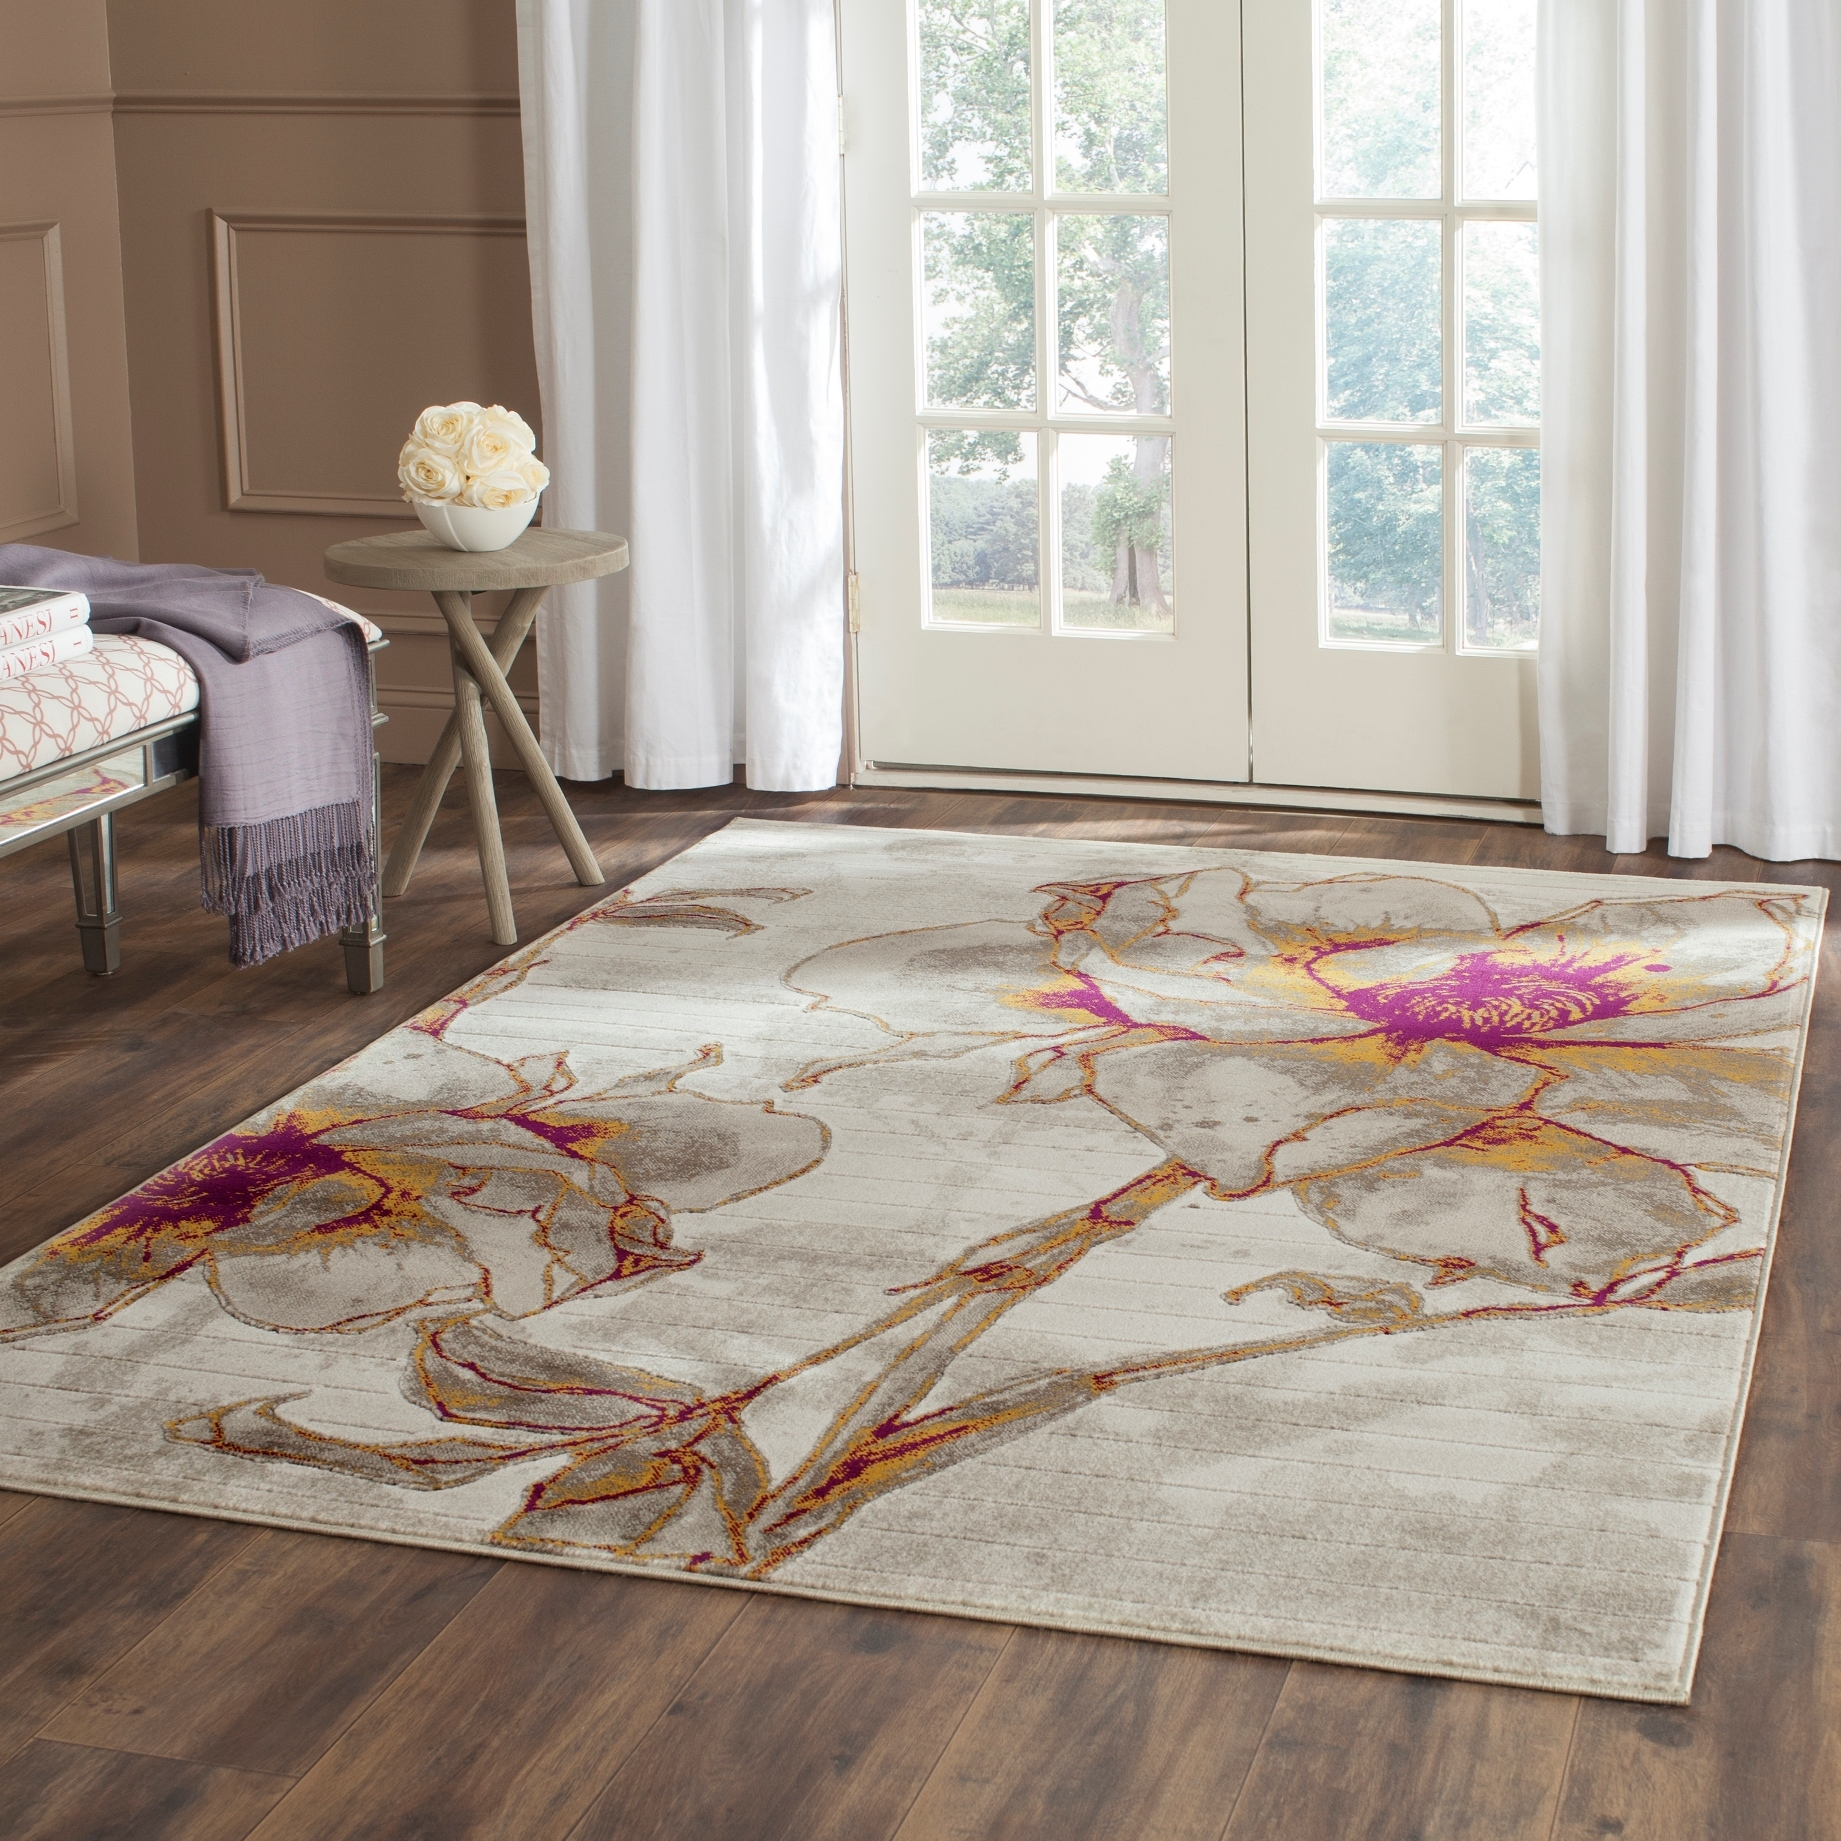 Rugs Cozy 4×6 Area Rugs For Your Interior Floor Accessories Ideas Inside 4×6 Wool Area Rugs (#12 of 15)